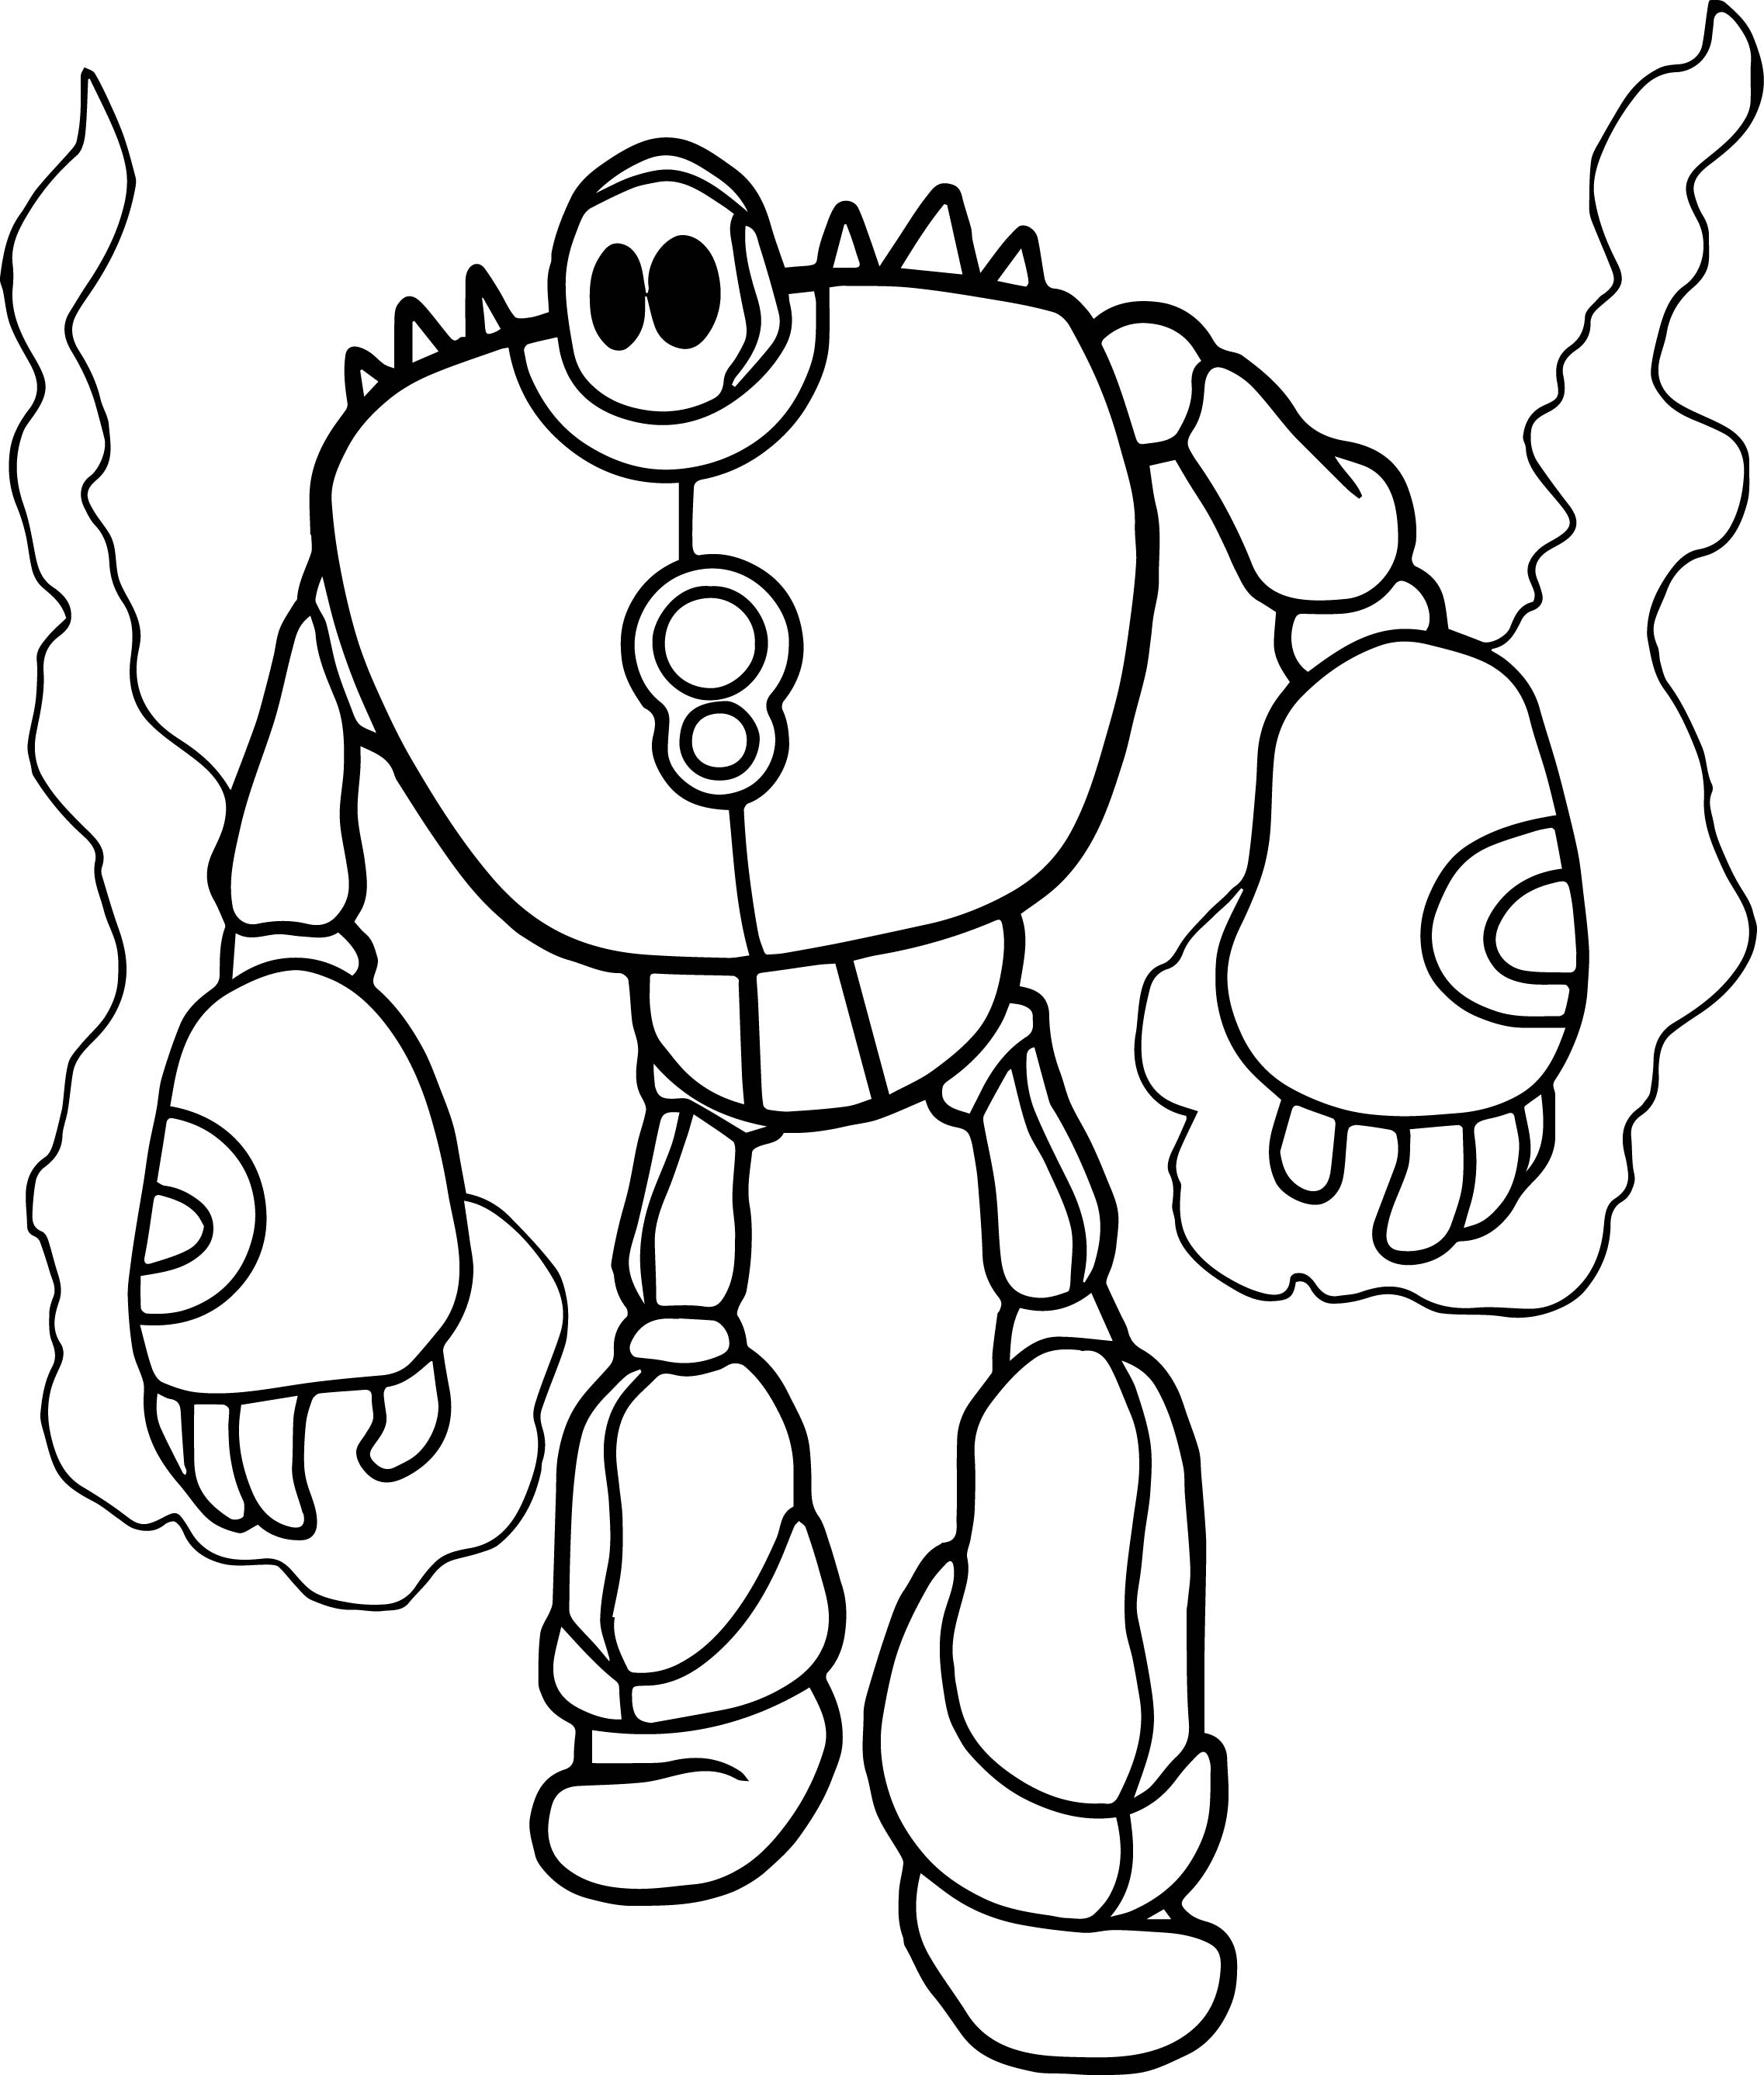 Fire Robot Coloring Page